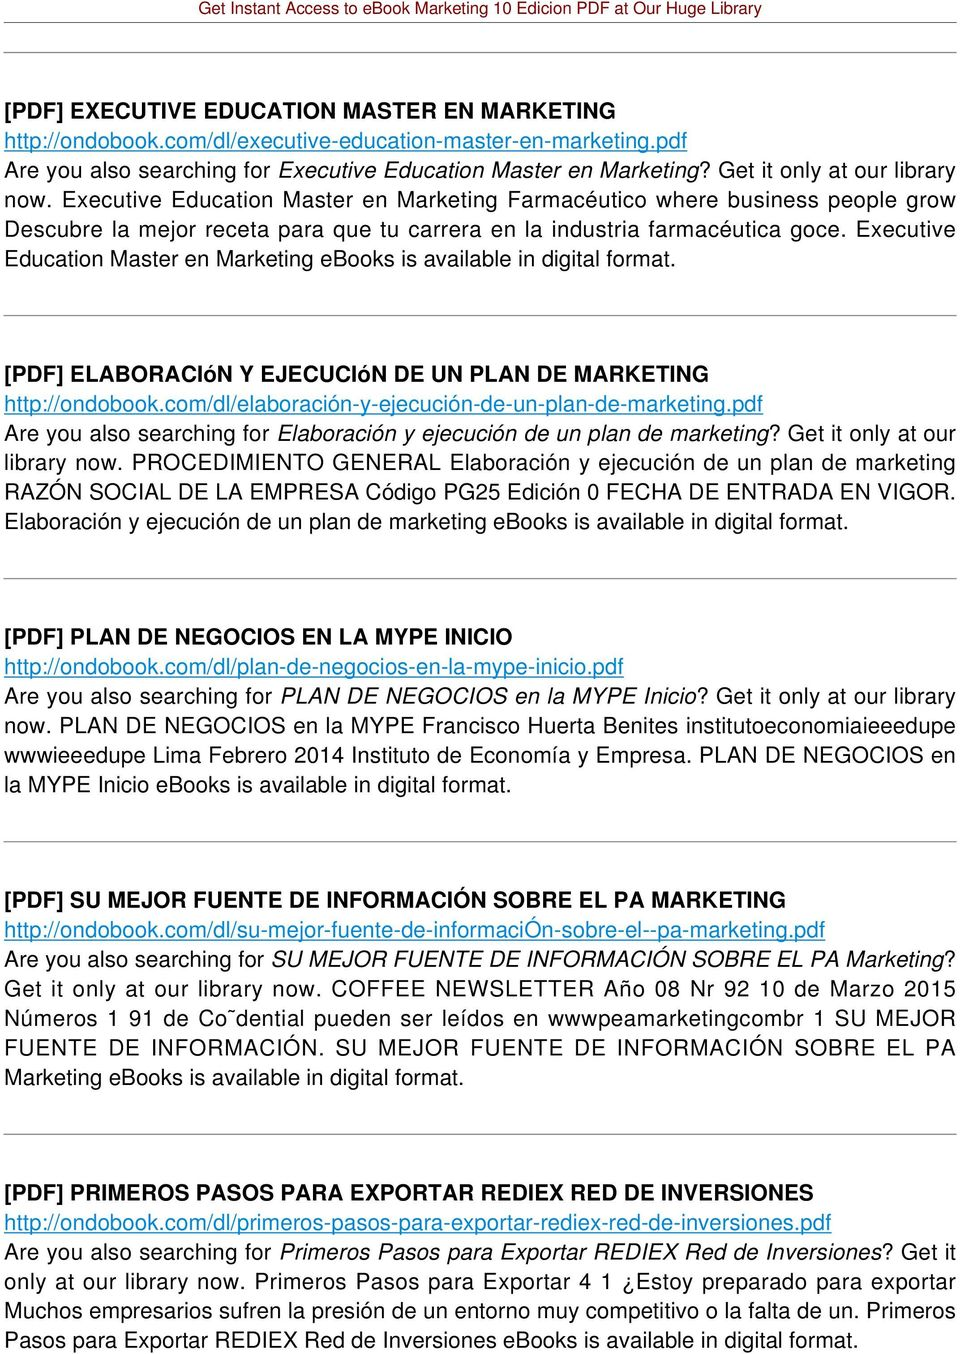 Executive Education Master en Marketing [PDF] ELABORACIóN Y EJECUCIóN DE UN PLAN DE MARKETING http://ondobook.com/dl/elaboración-y-ejecución-de-un-plan-de-marketing.